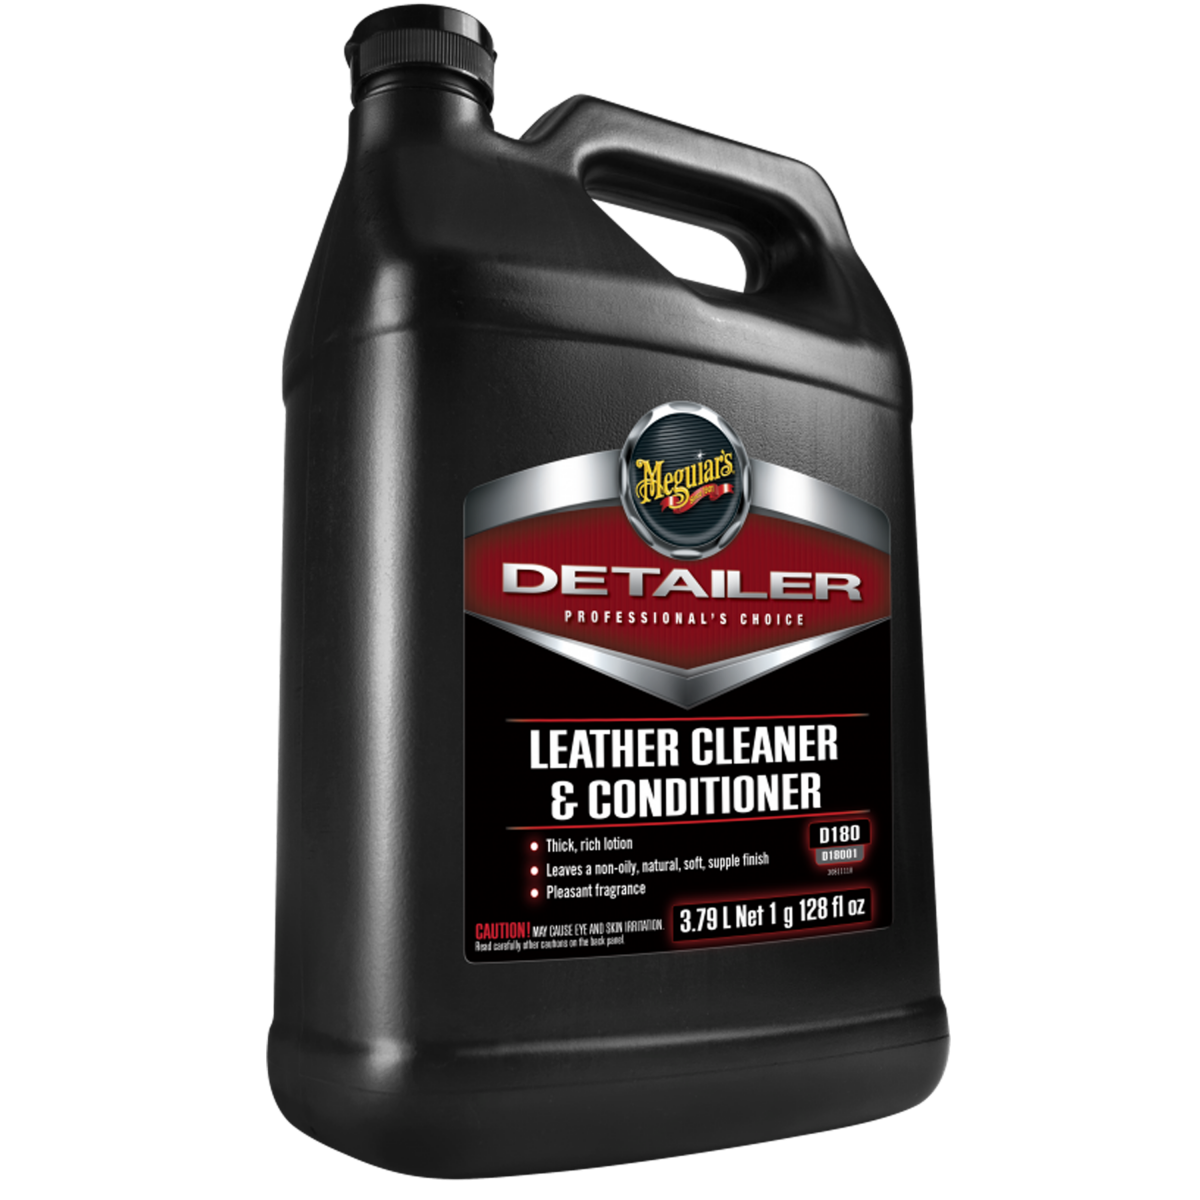 Meguiar's Leather Cleaner & Conditioner